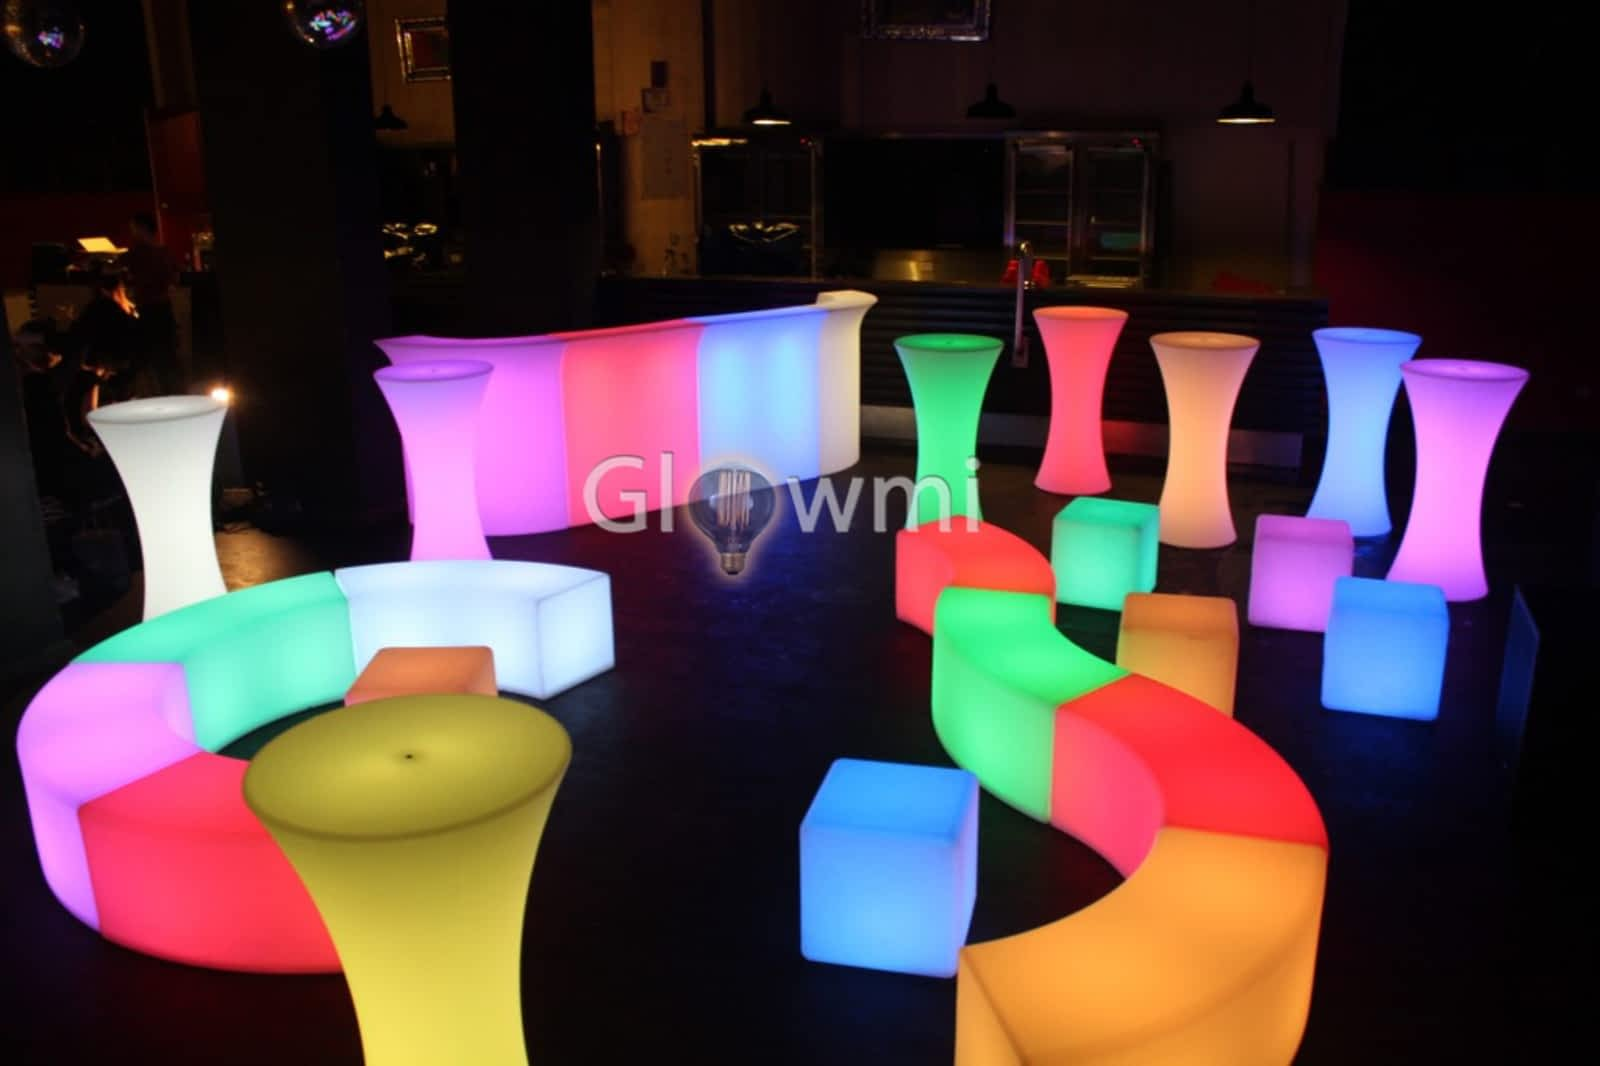 glowmi-led-glow-furniture-decor-event-party-rentals-toronto-gta-1.jpg